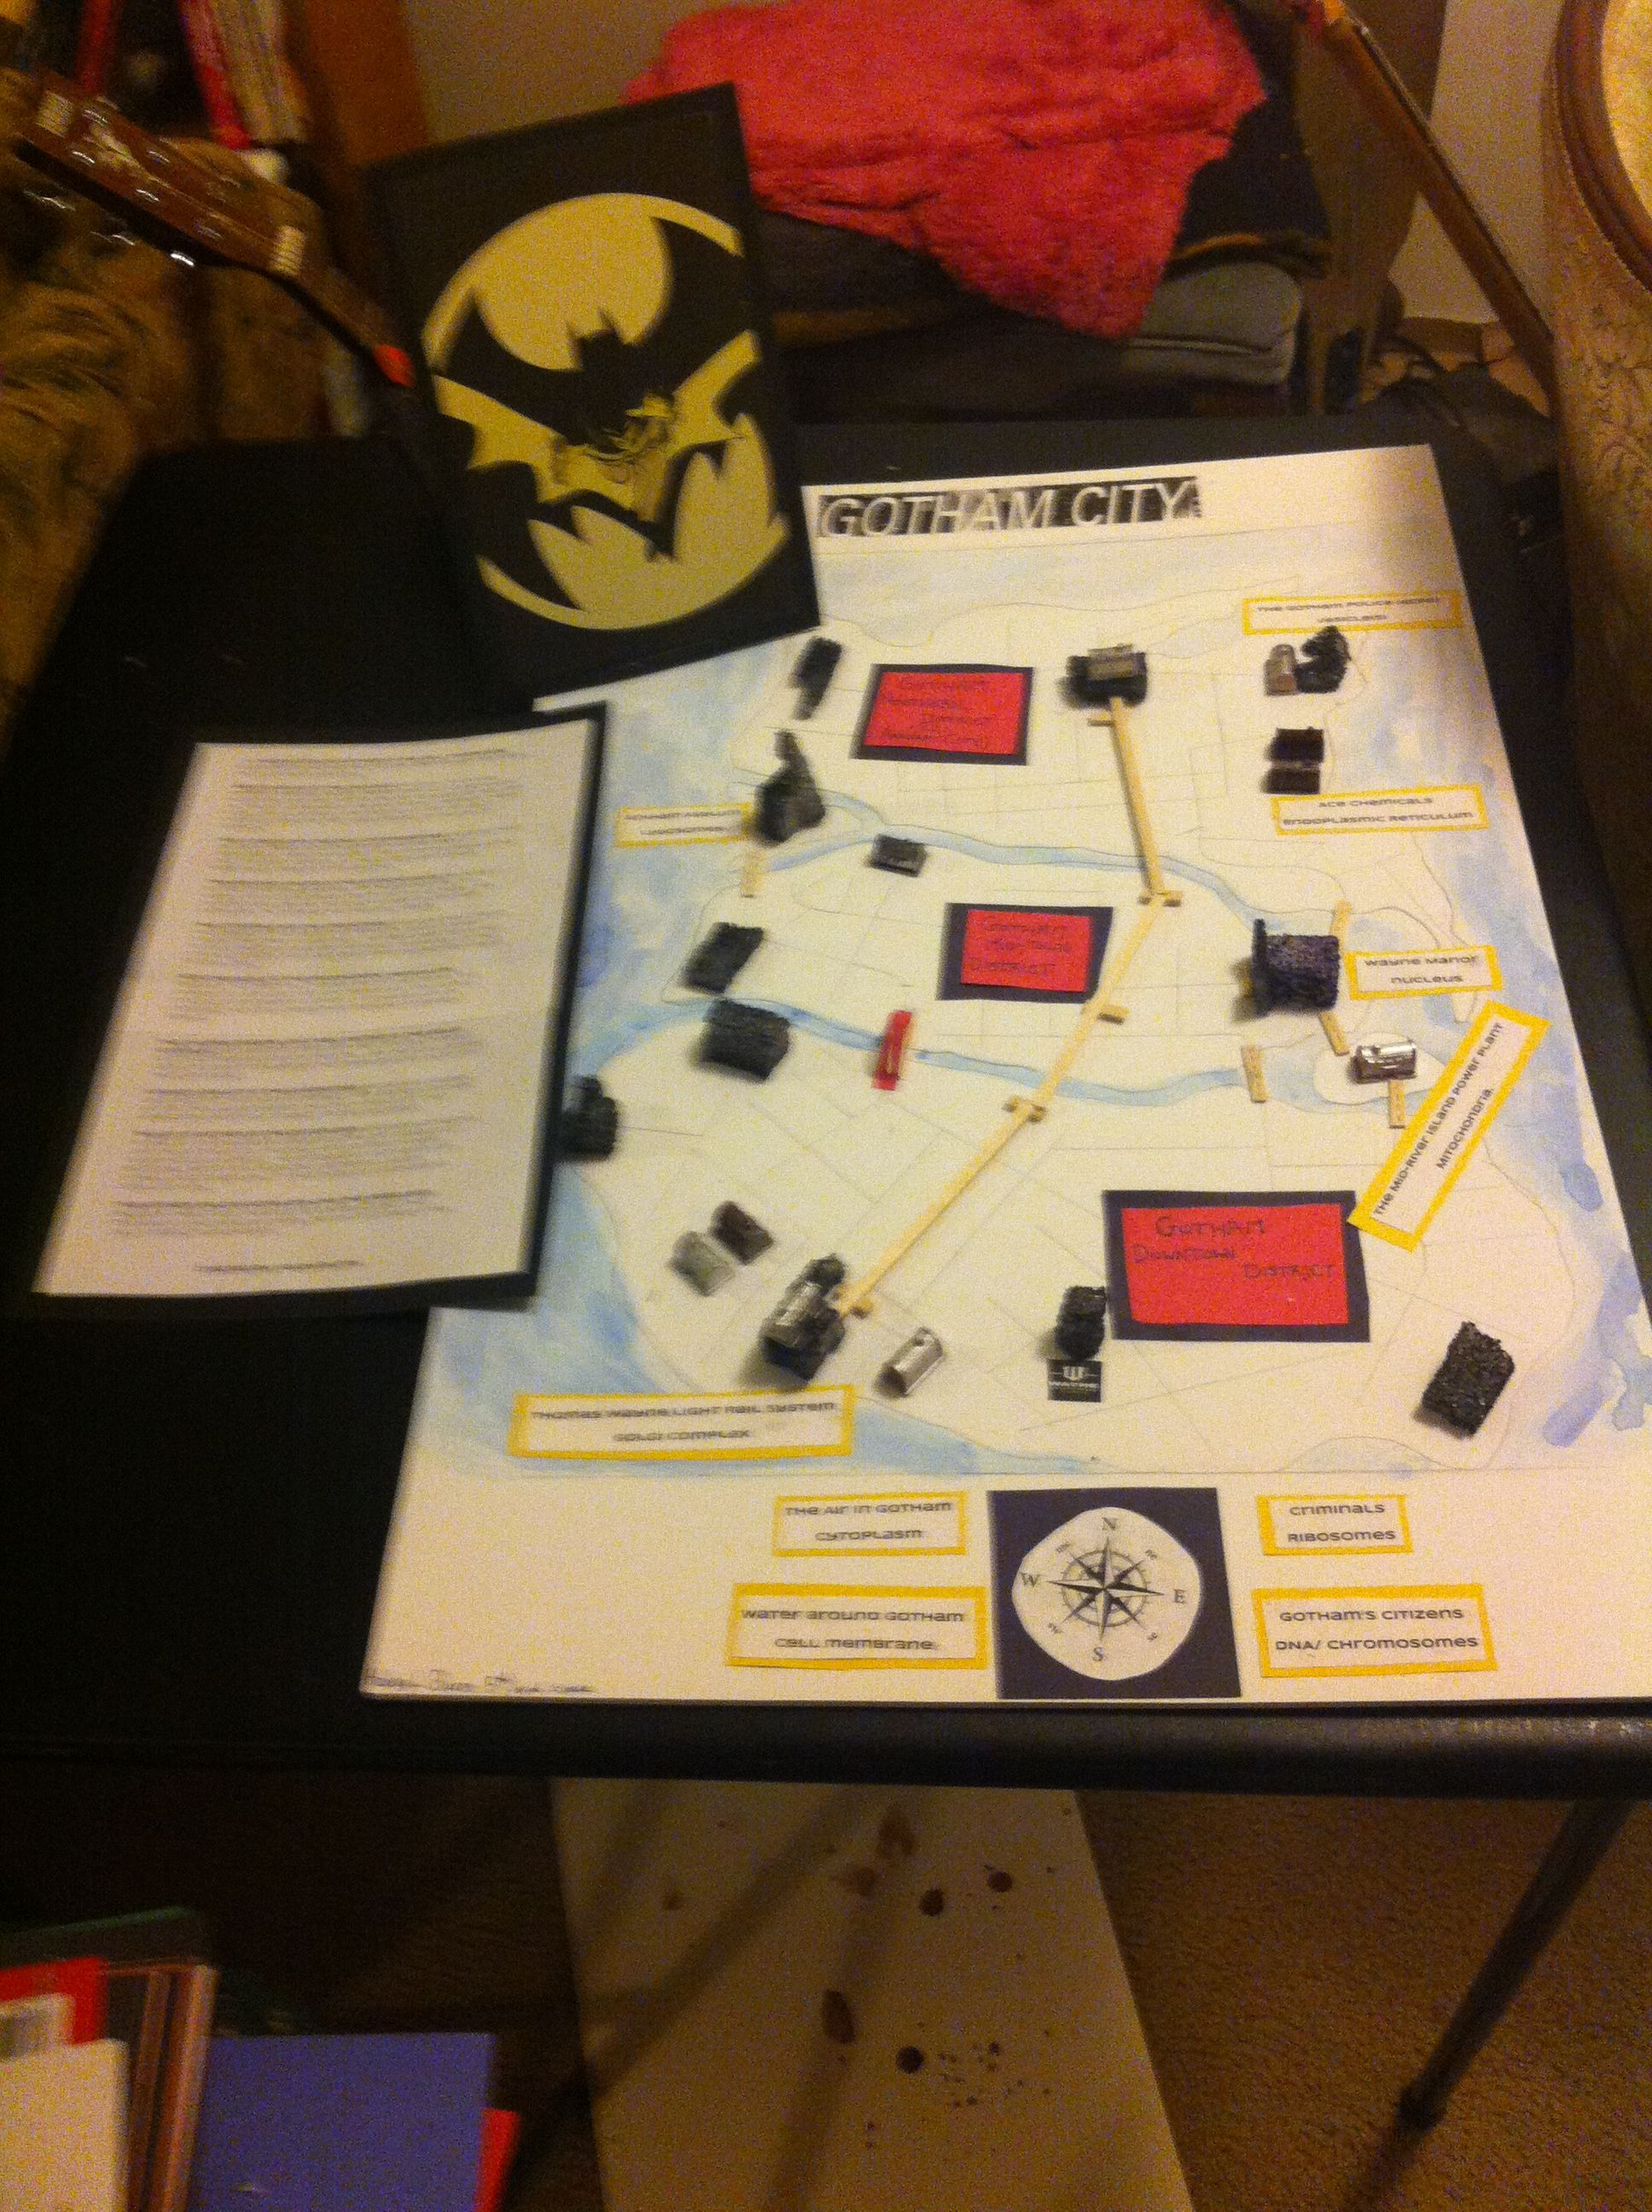 Gotham City As Cell Analogy Project It Got An A Haley